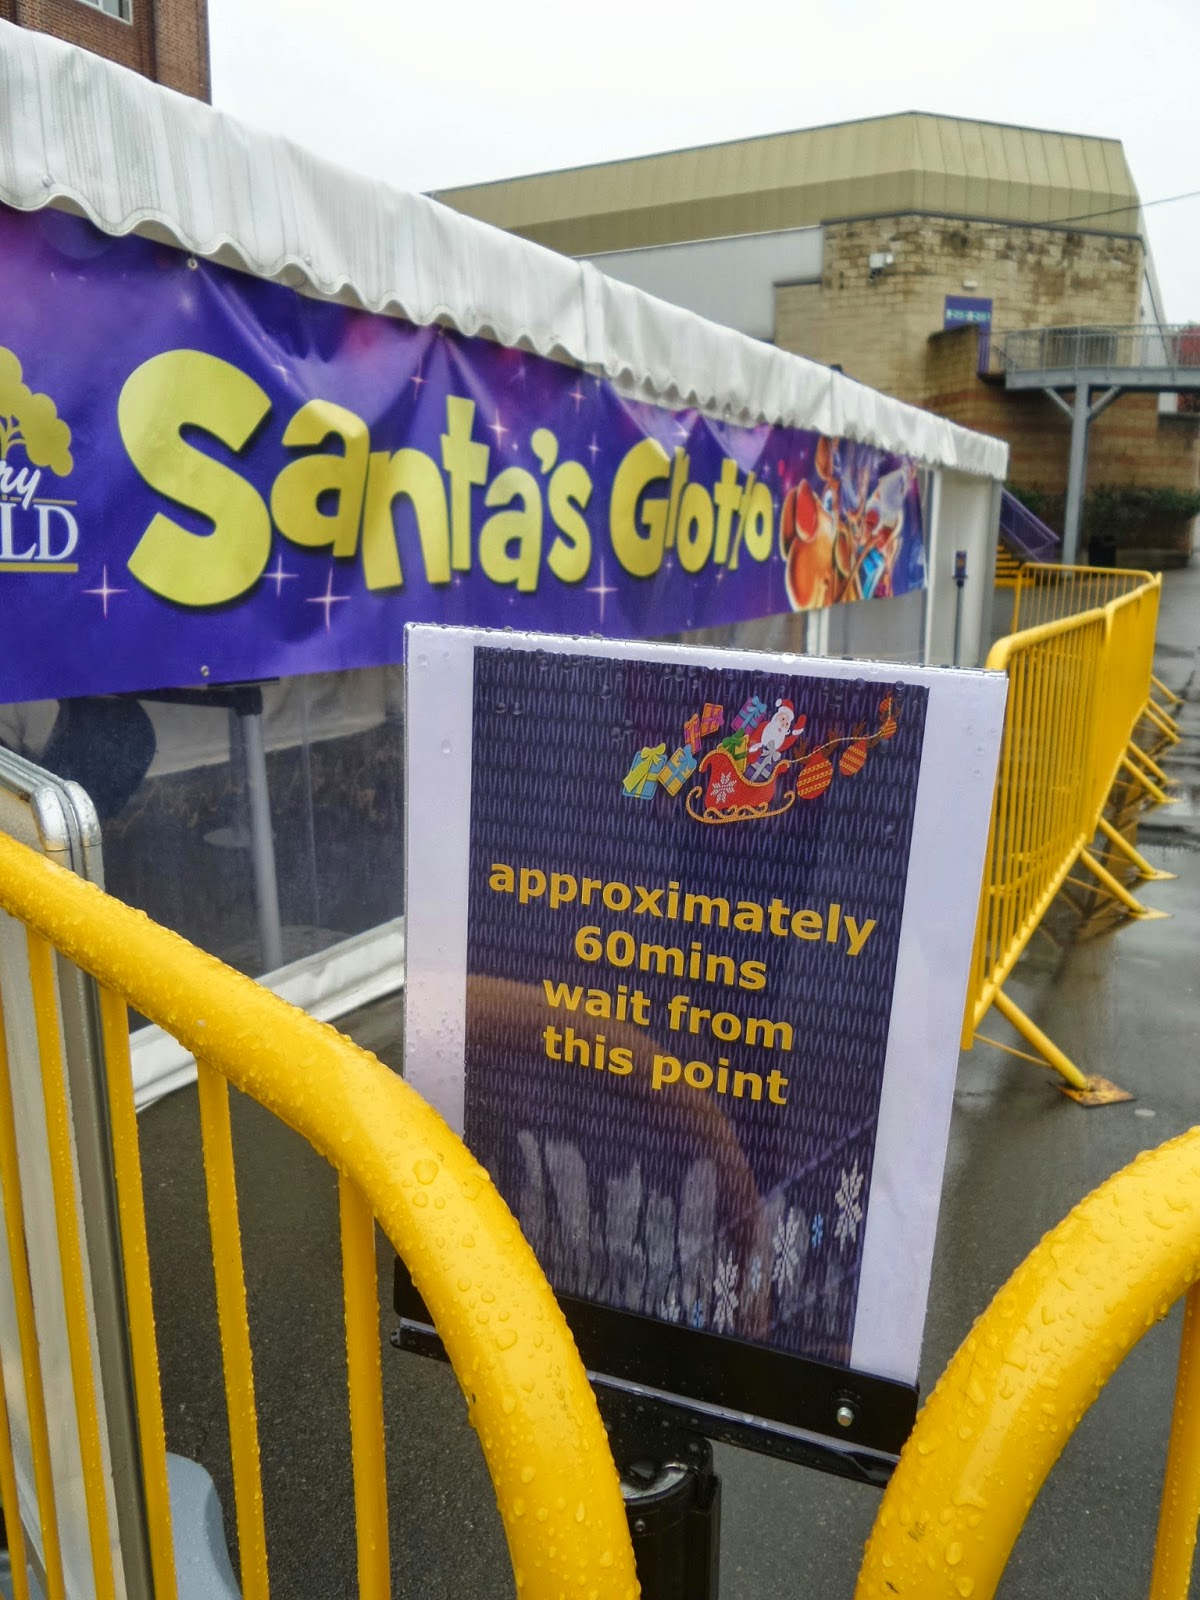 Queues can build up at Santa's Grotto, but it's quite fast moving